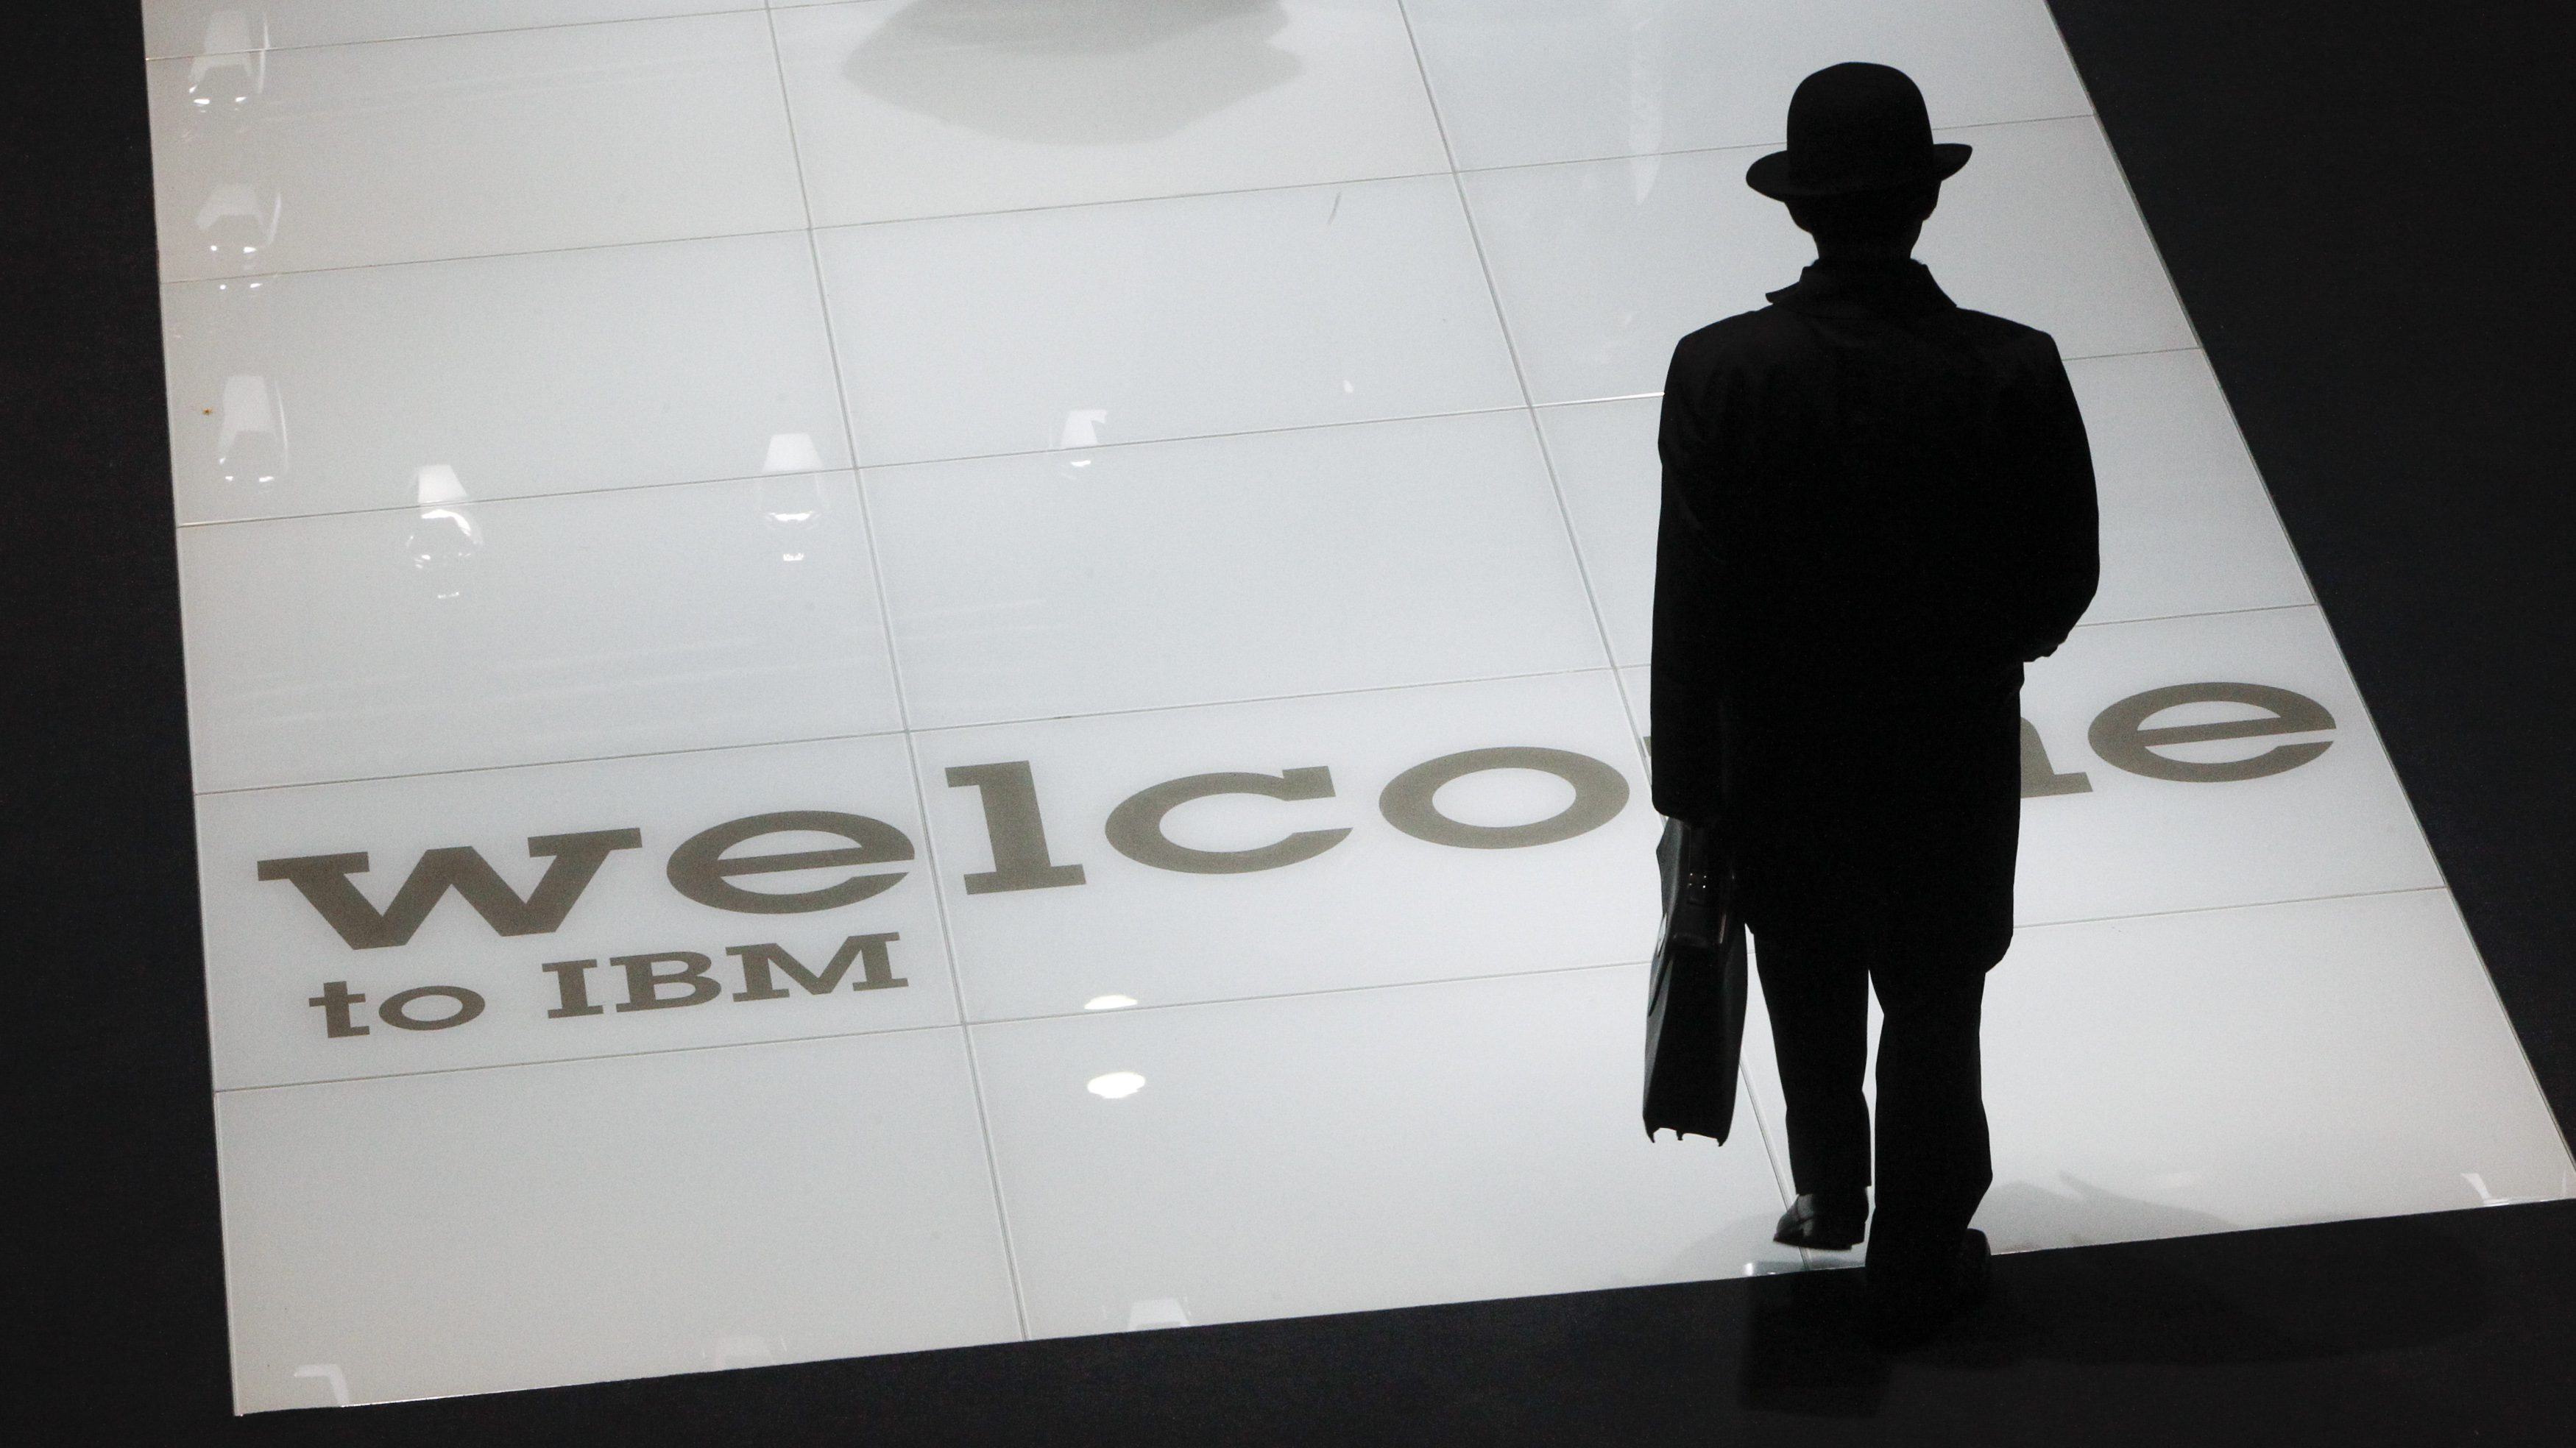 A man visits the stand of U.S. firm IBM at the CeBIT computer fair in Hanover March 2, 2010. The world's largest IT fair CeBIT opens its doors on March 2 and runs through March 6. Spain is the partner country of the 2010 CeBIT.